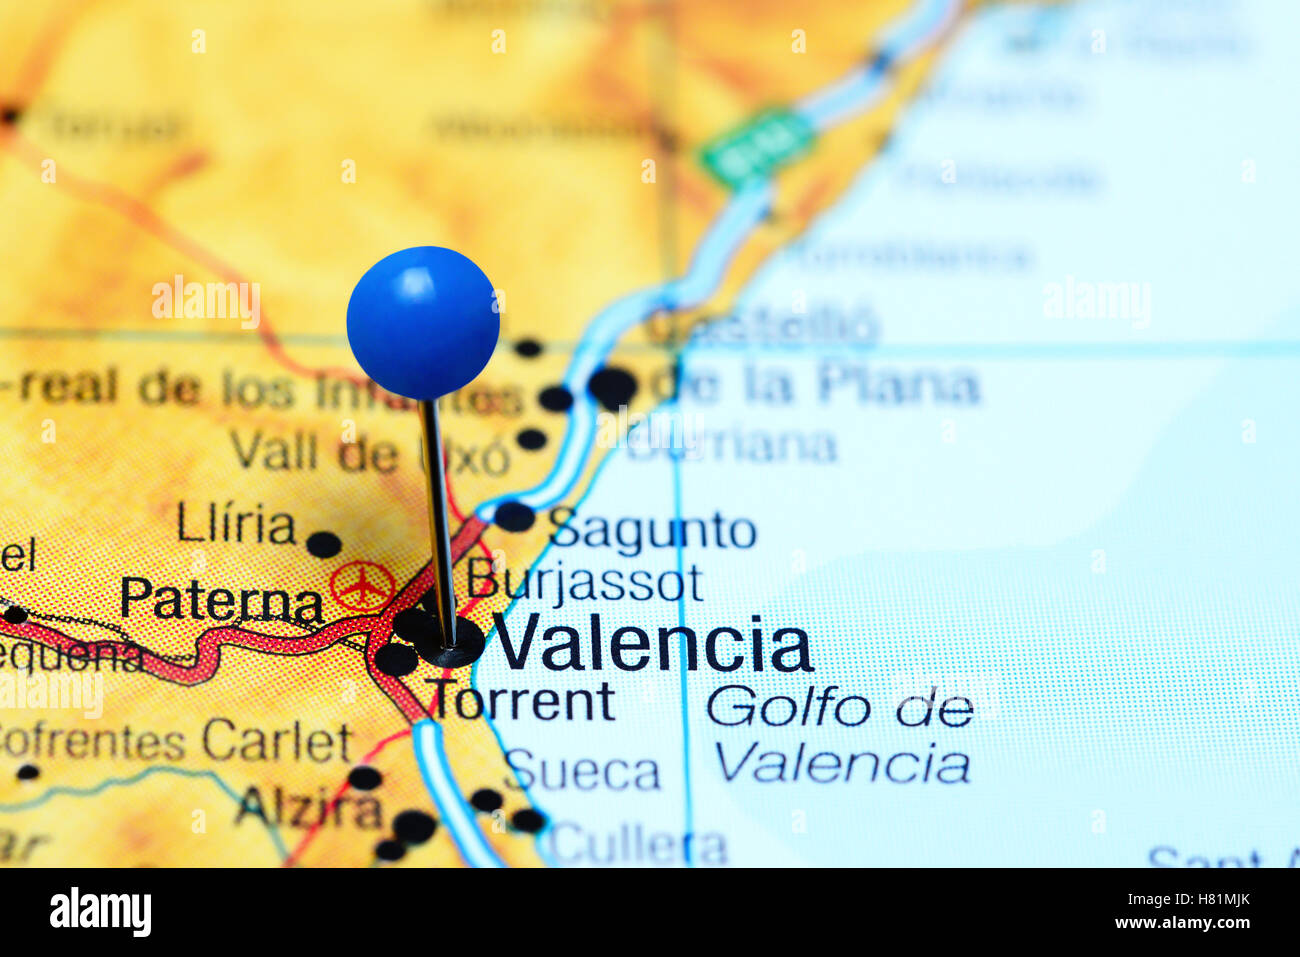 Map Of Spain Valencia.Valencia Pinned On A Map Of Spain Stock Photo 125427979 Alamy